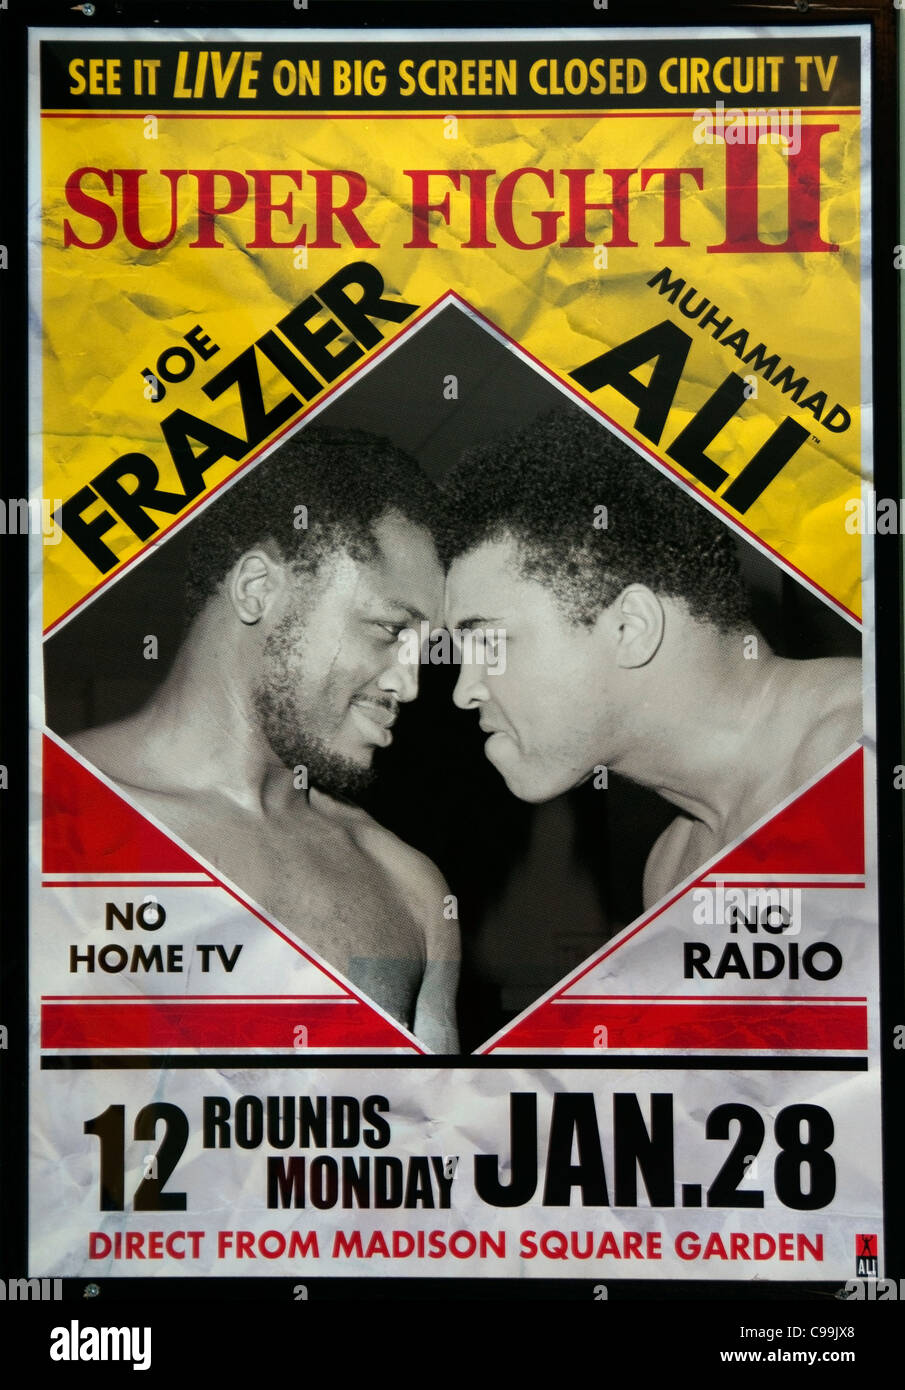 Boxing  March 8 1971 New York The Fight of the Century Joe Frazier Muhammad Ali  Madison Garden New York - Stock Image